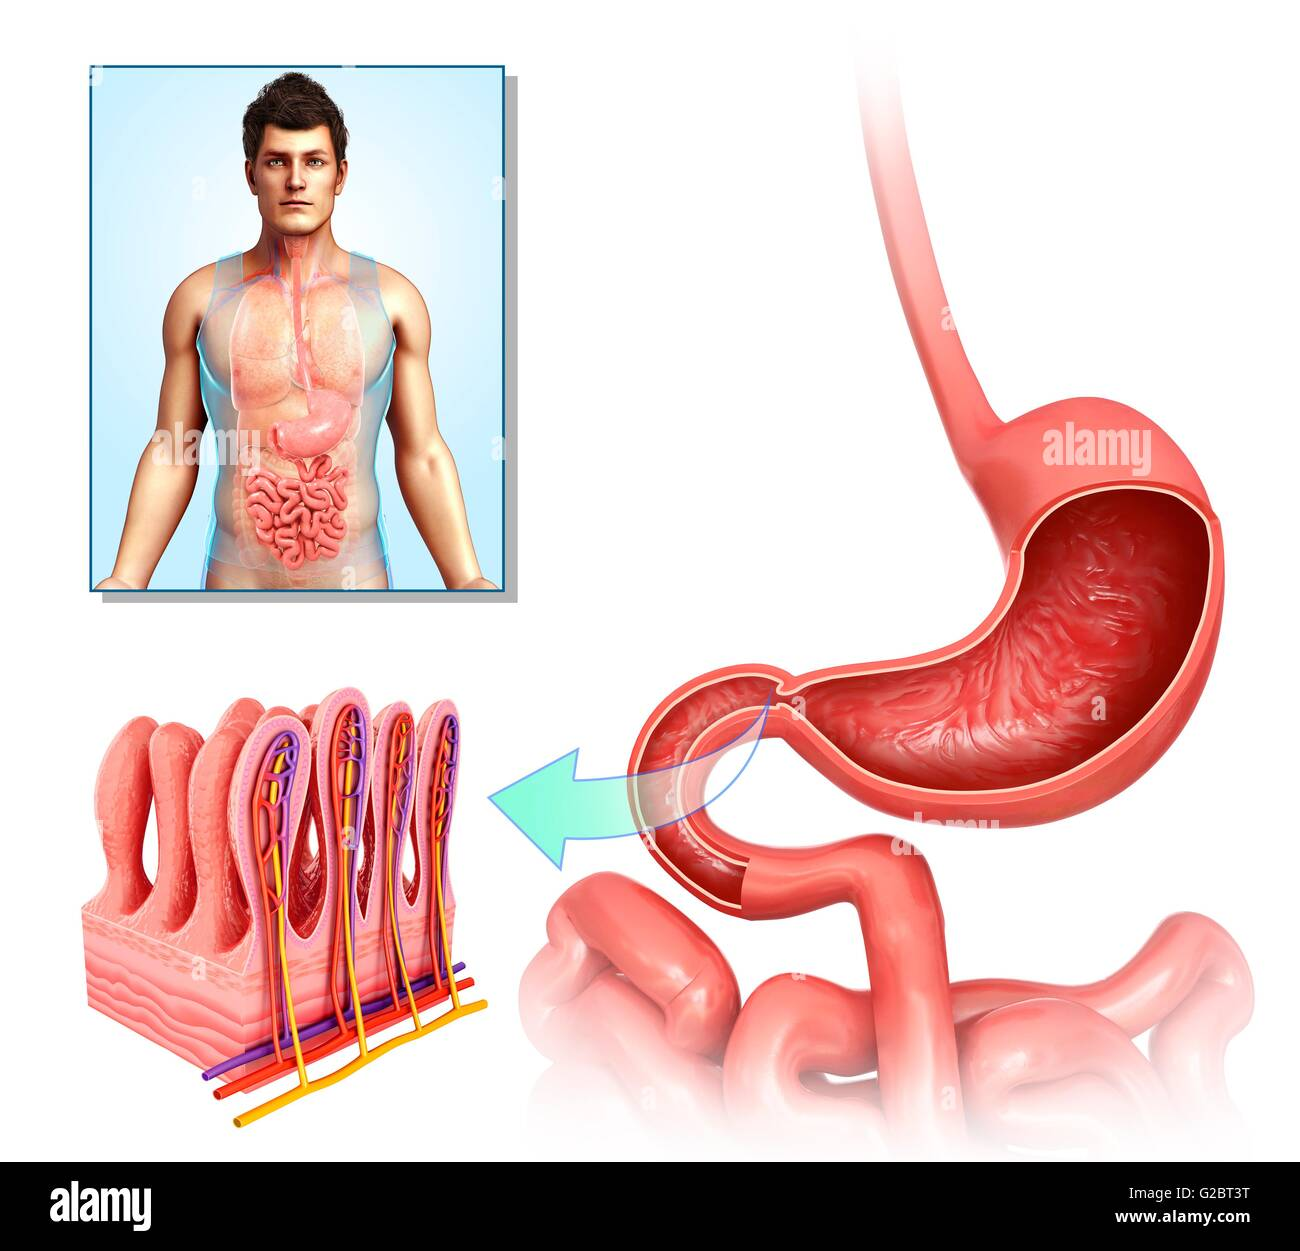 Villi Of The Human Stomach Illustration Stock Photo 104751916 Alamy